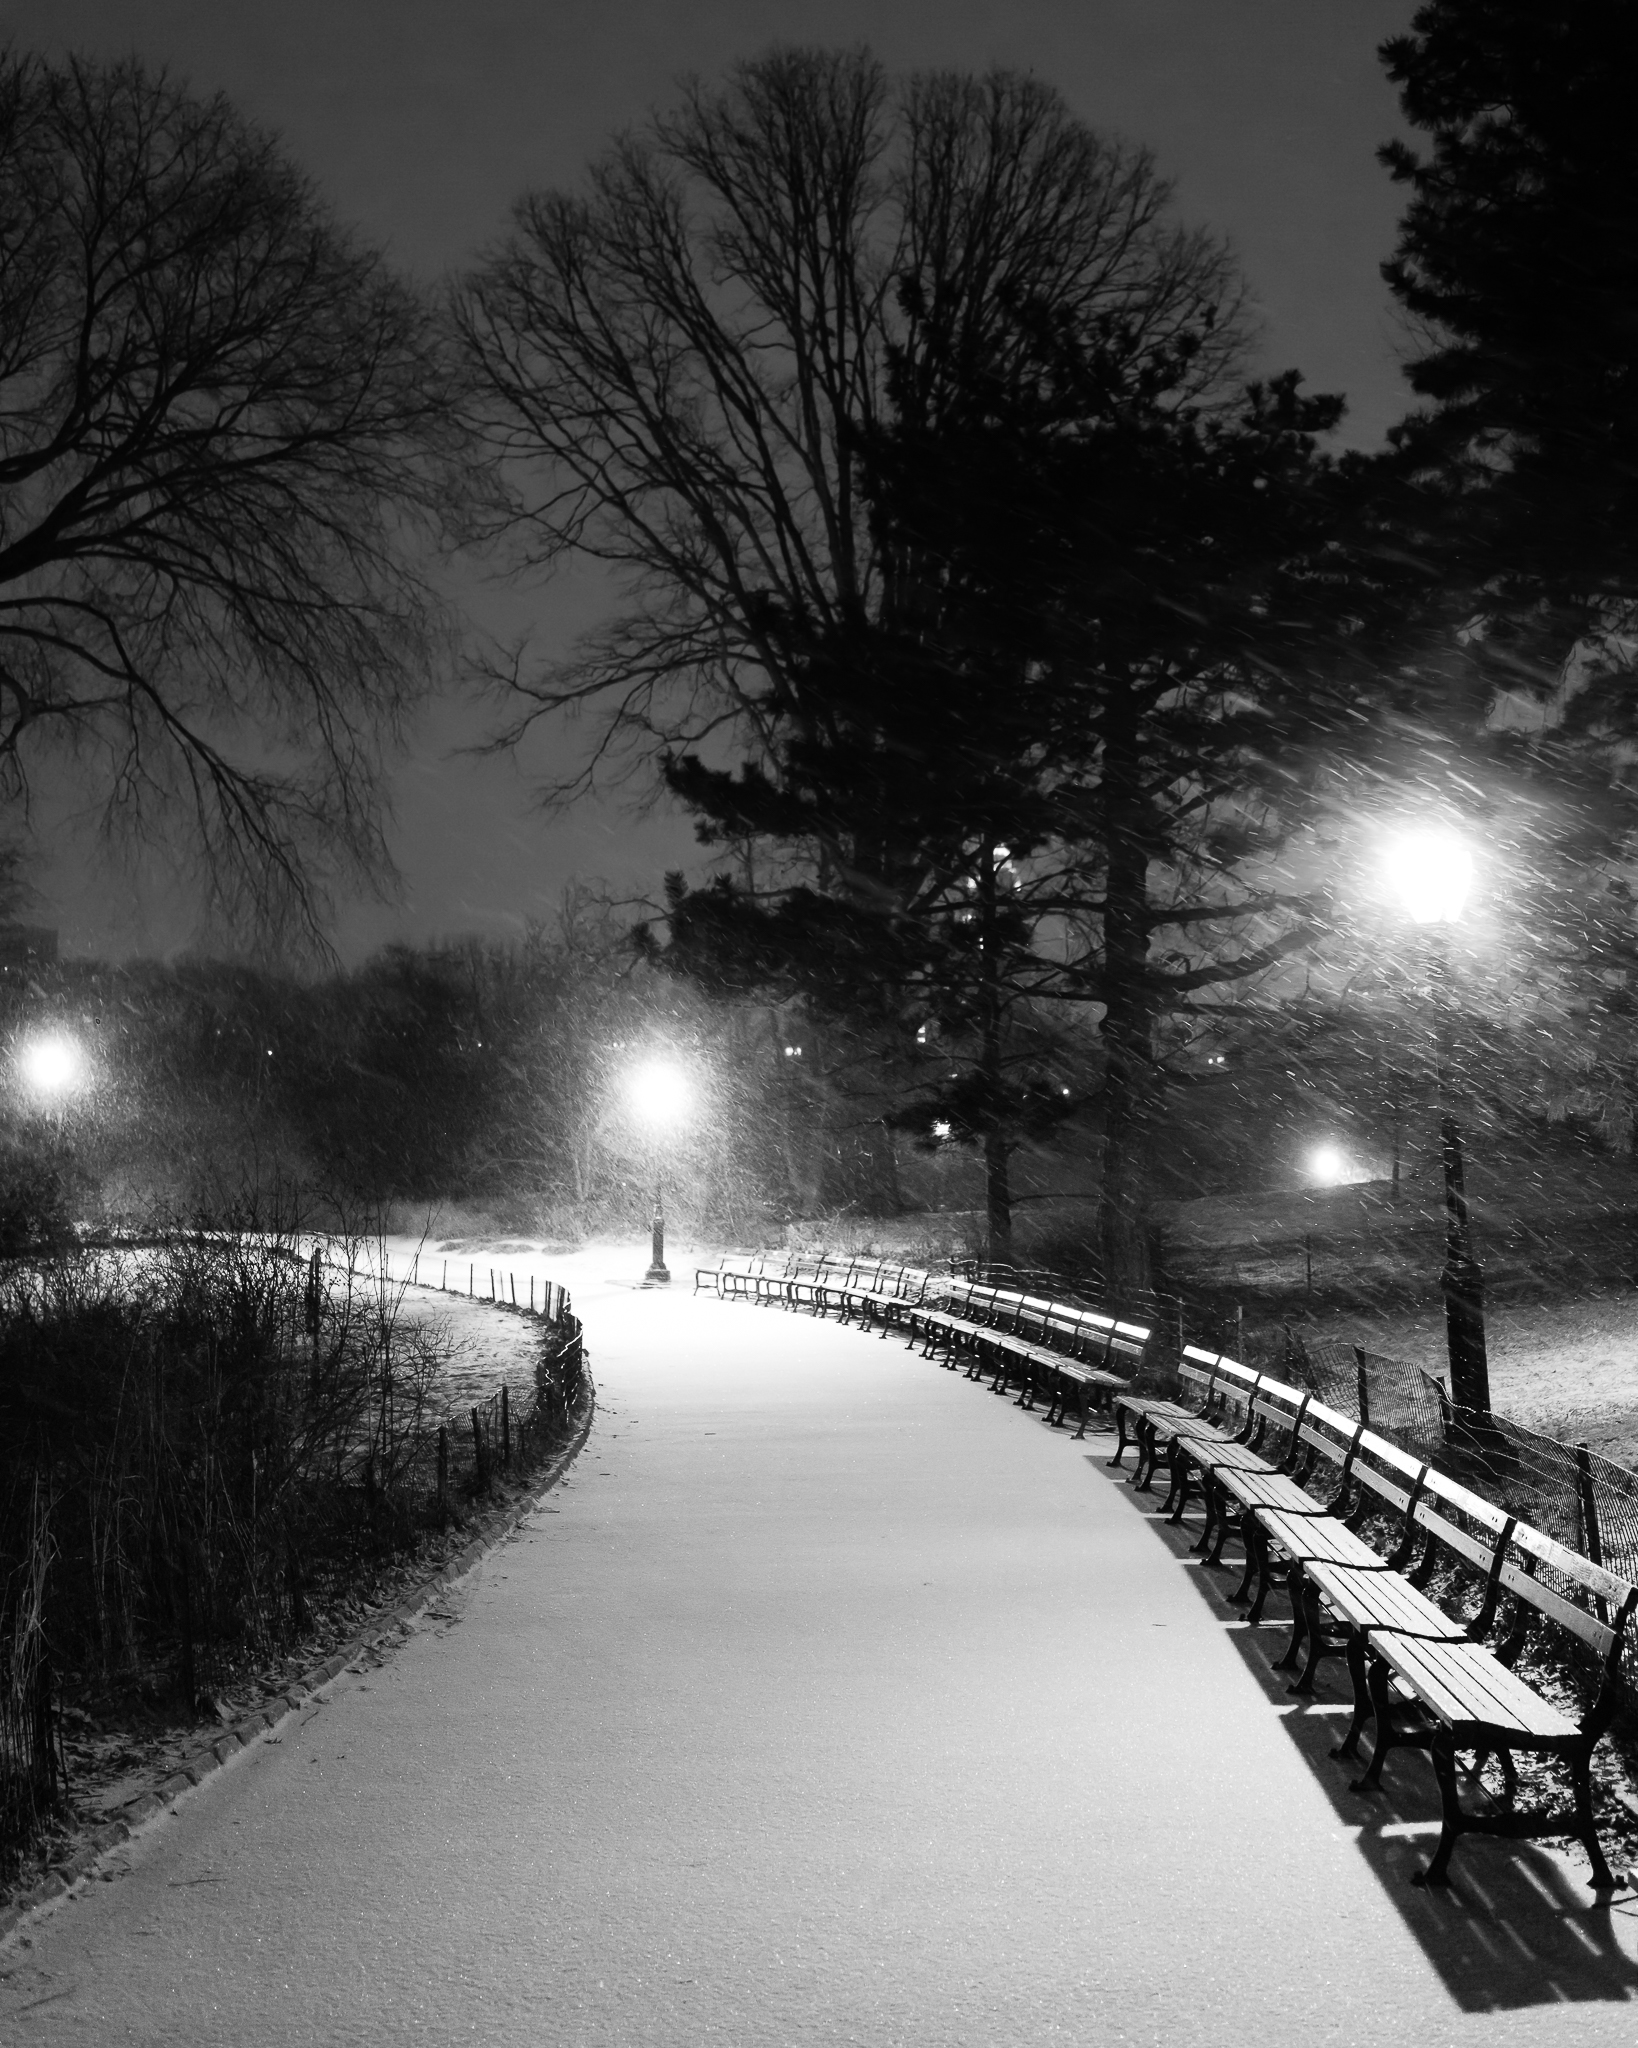 a photo of a snowy path in central park winter in new york city